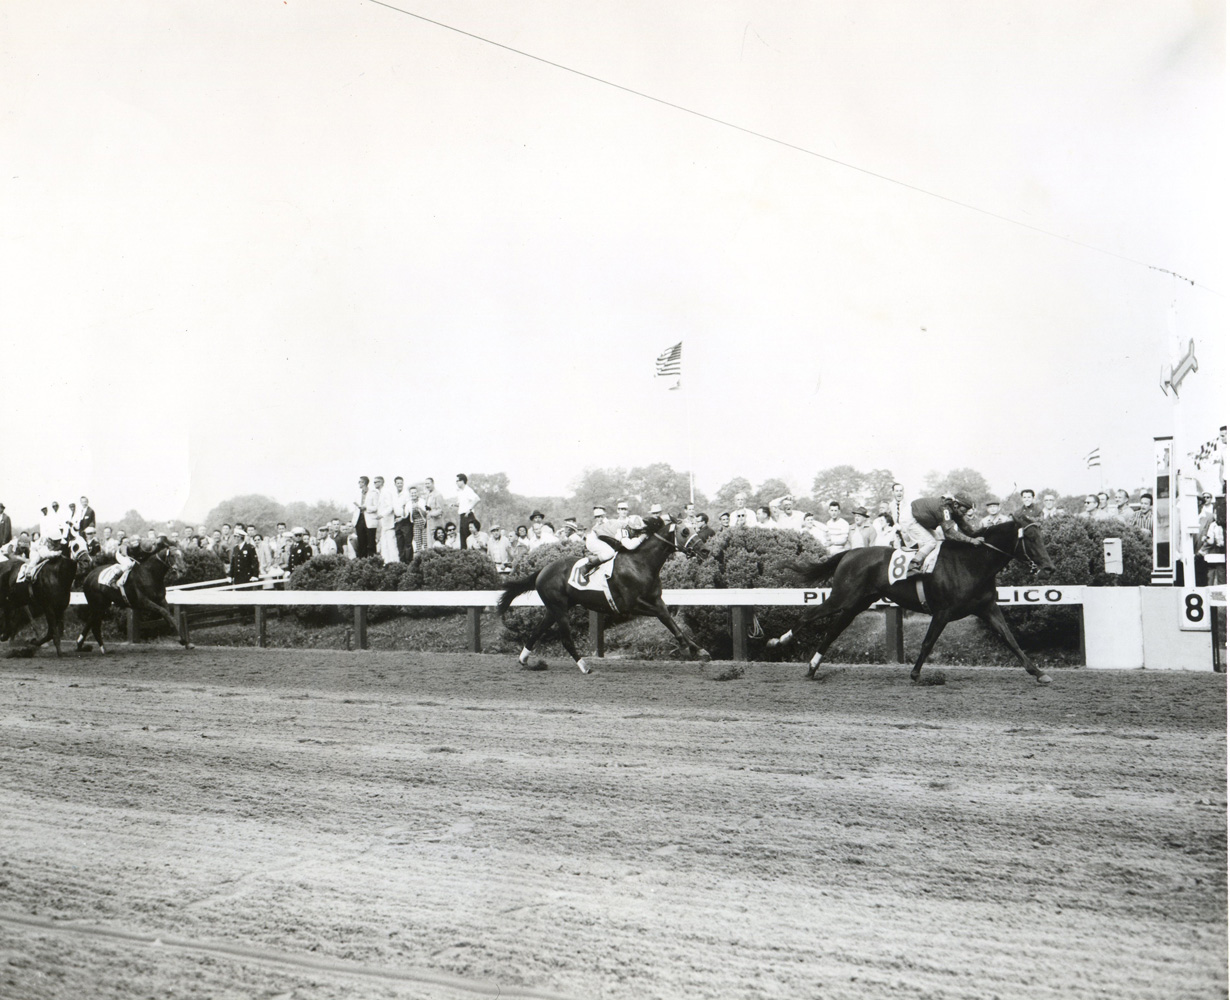 Tim Tam (Ismael Valenzuela up) winning the 1958 Preakness at Pimlico (Pimlico Photo/Jerry Frutkoff /Museum Collection)